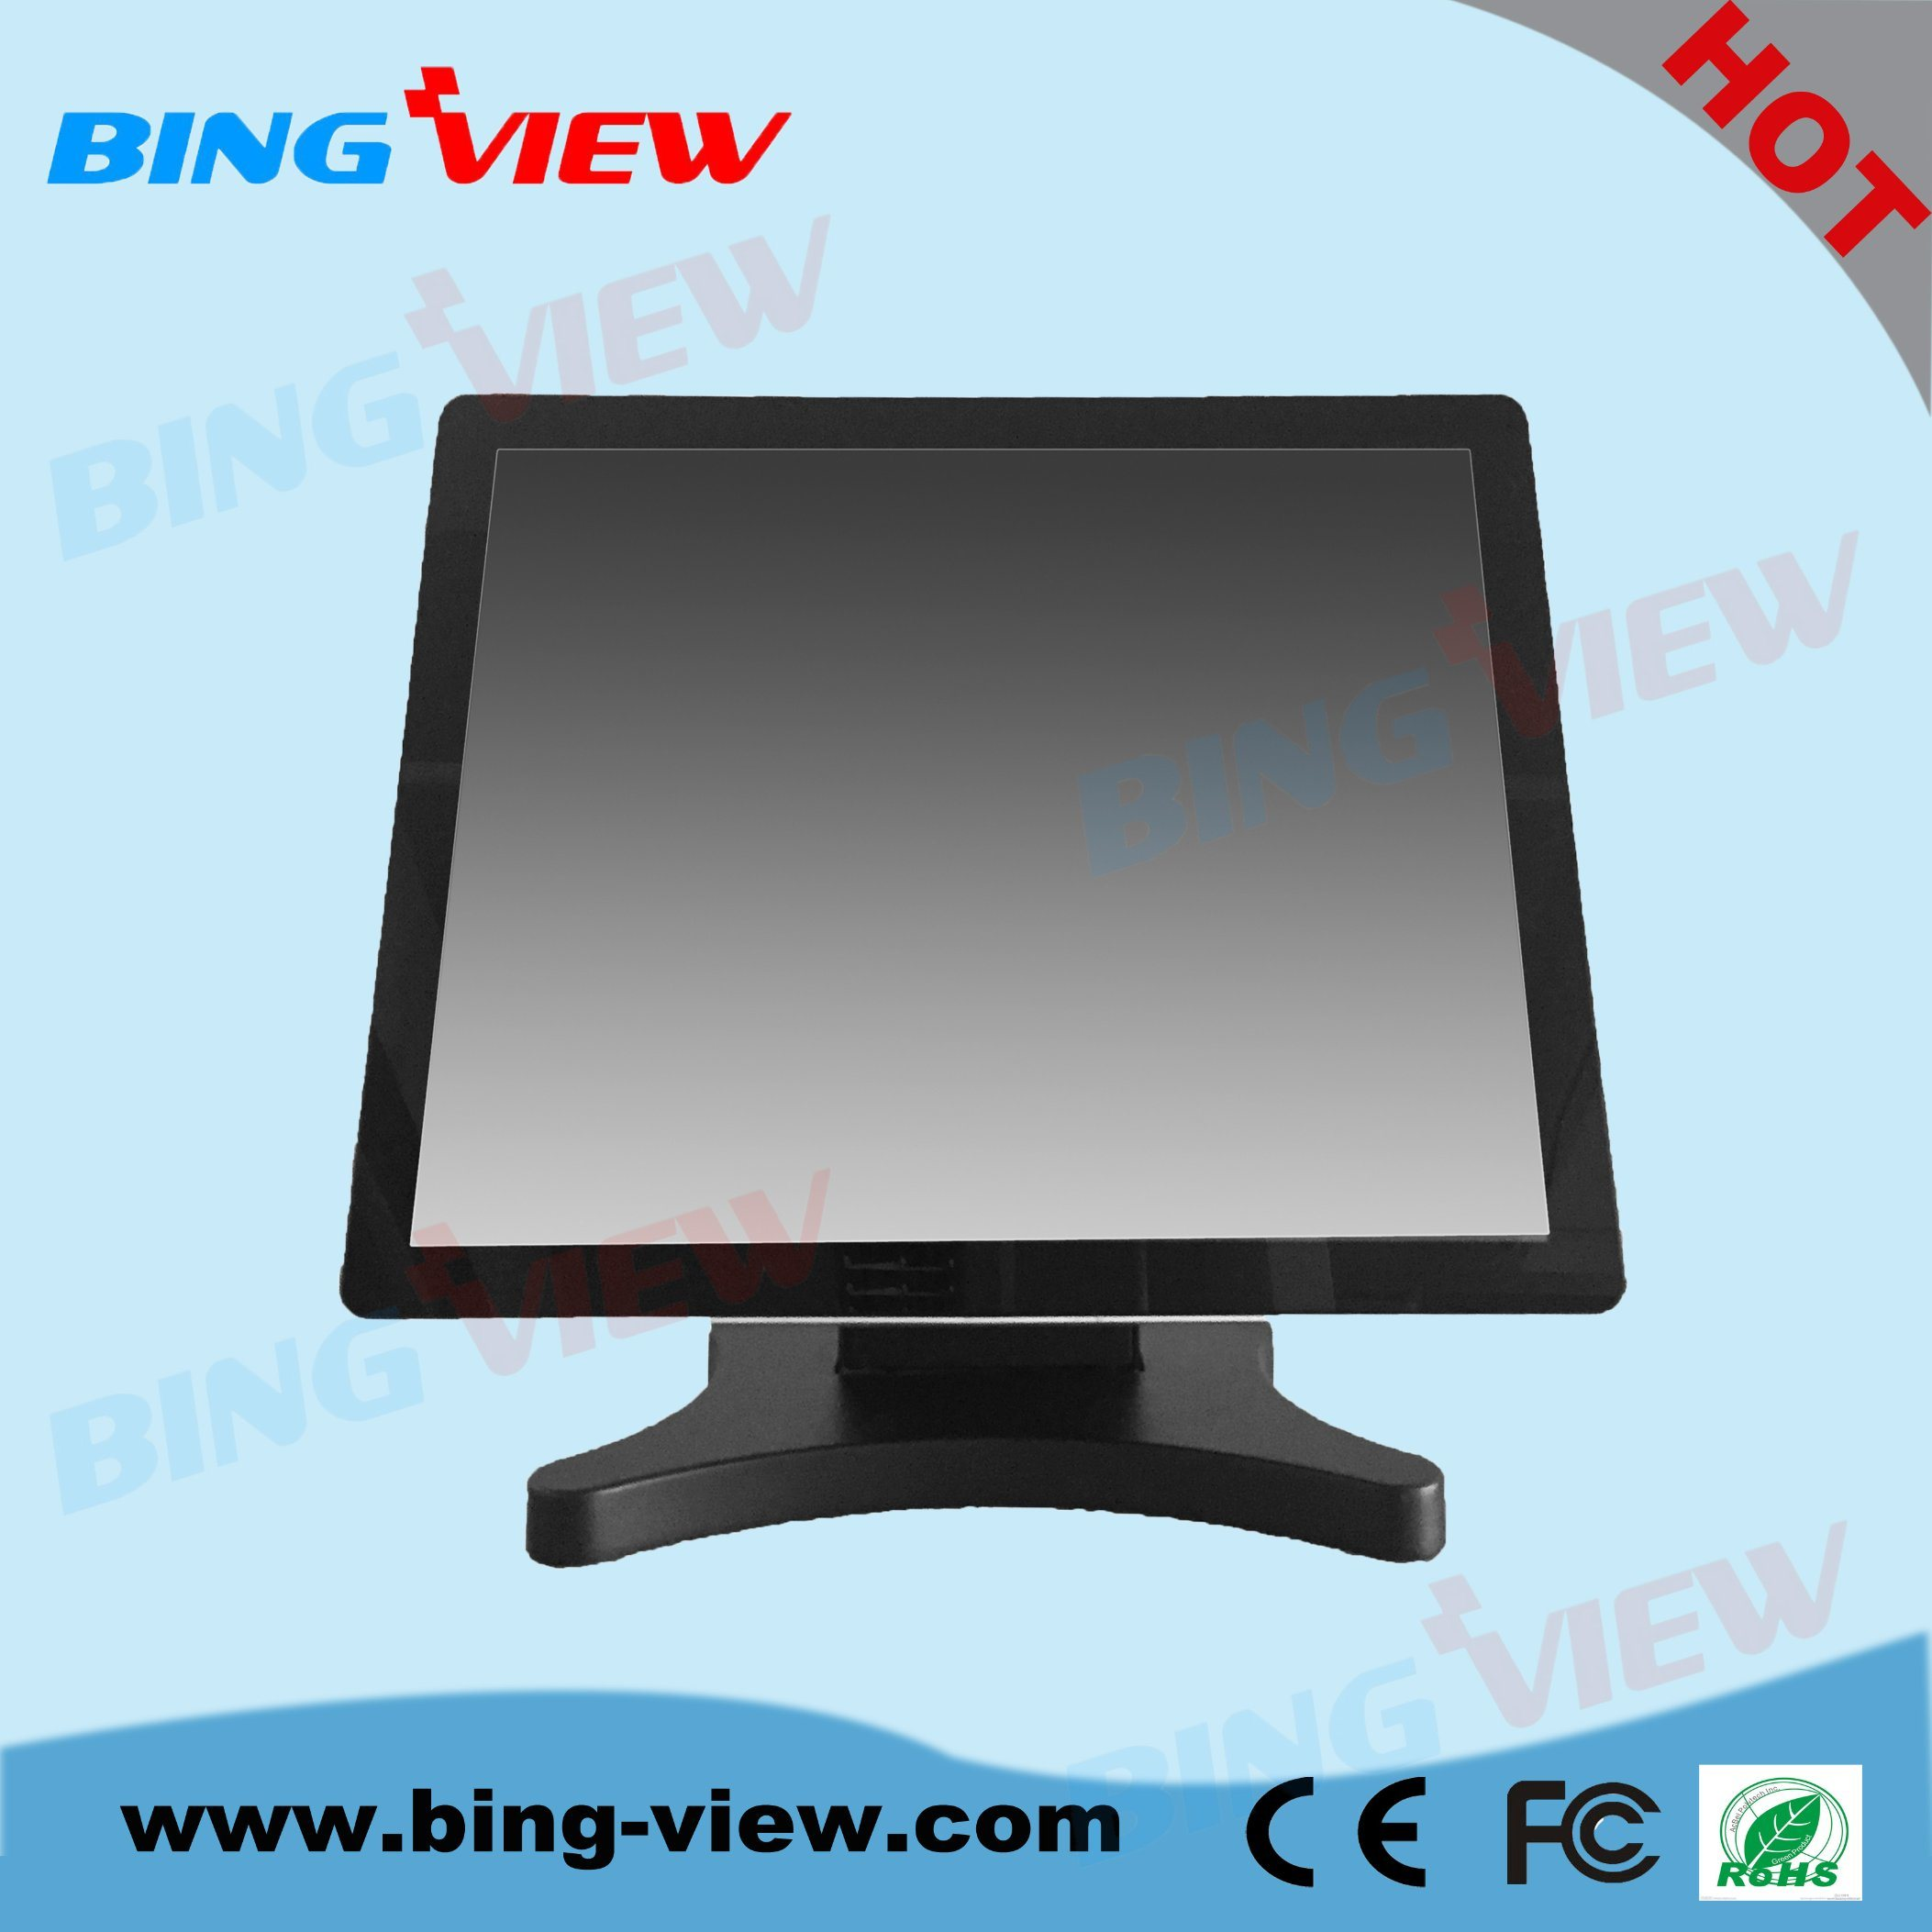 "4: 3 Hot Selling 21.5""True Flat Design Pcap POS Touch Monitor Screen"